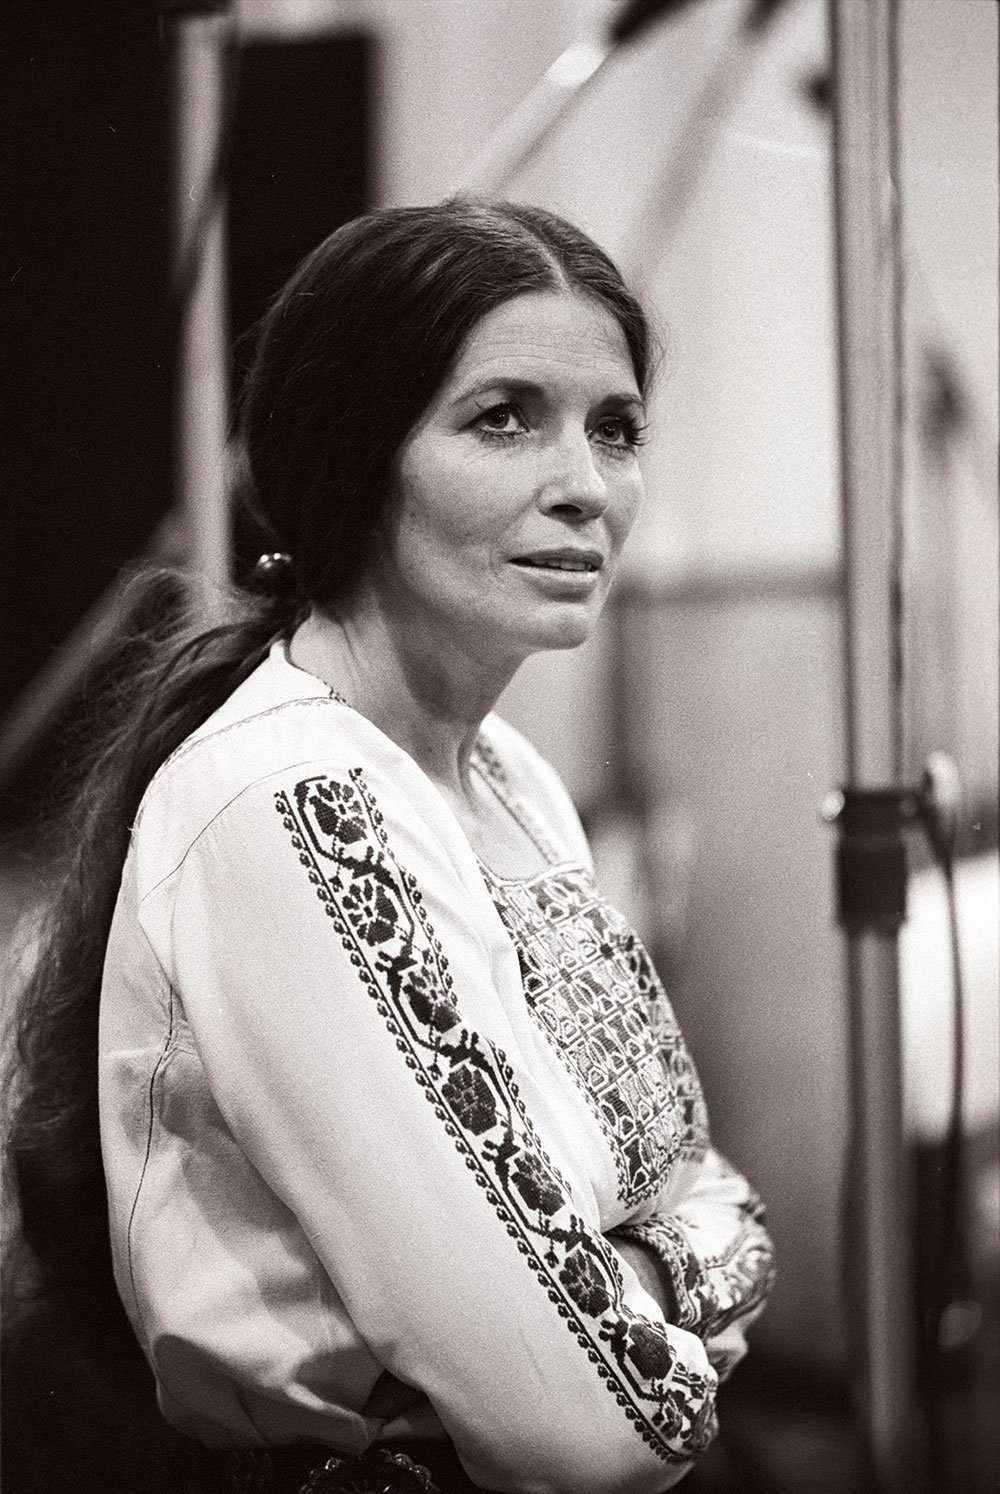 June Carter Cash at the Columbia Records 30th Street Studios in New York, NY, in July 1975